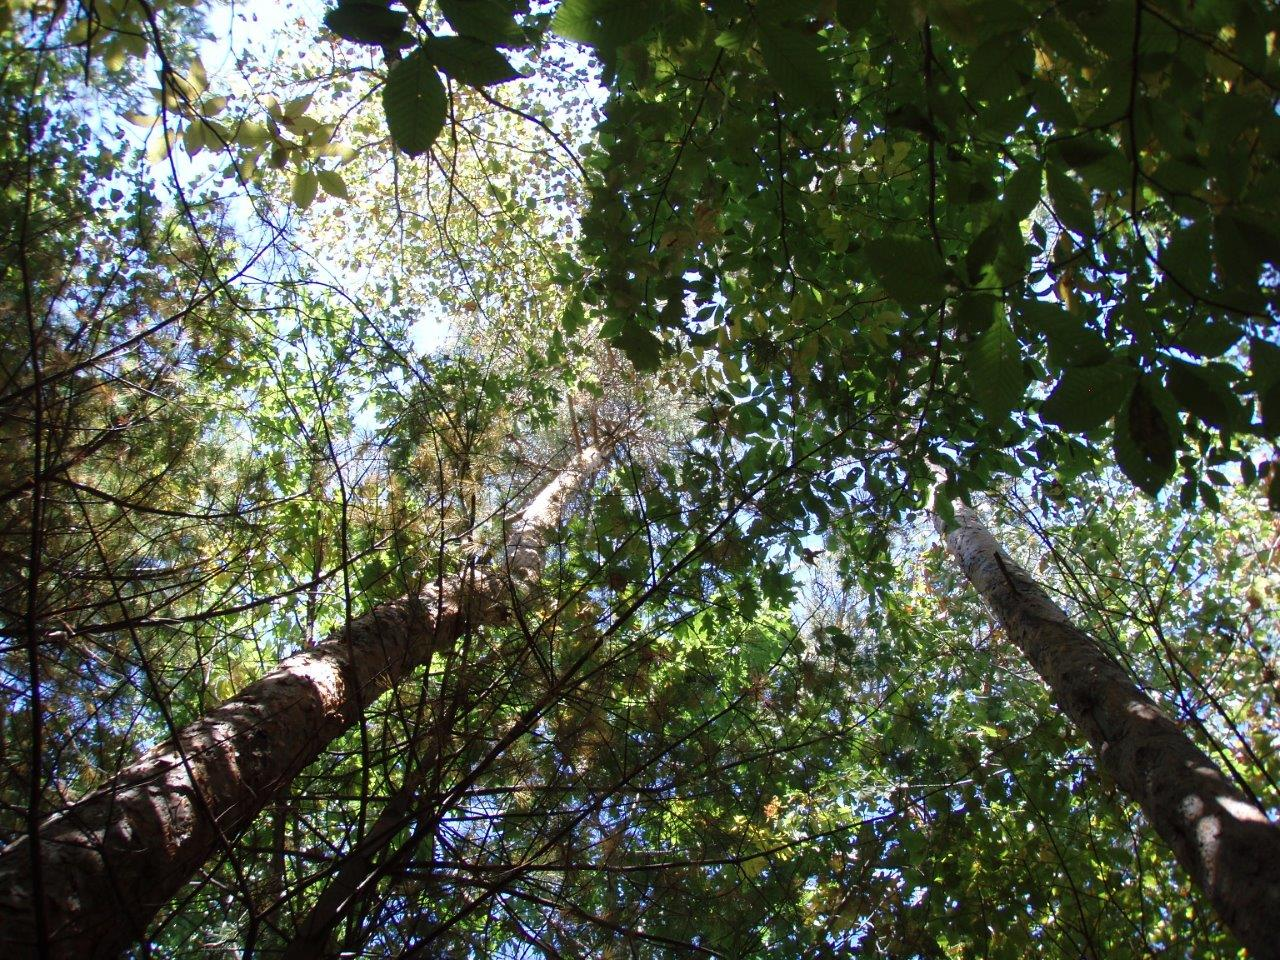 In The Forest - A Canopy Above 2